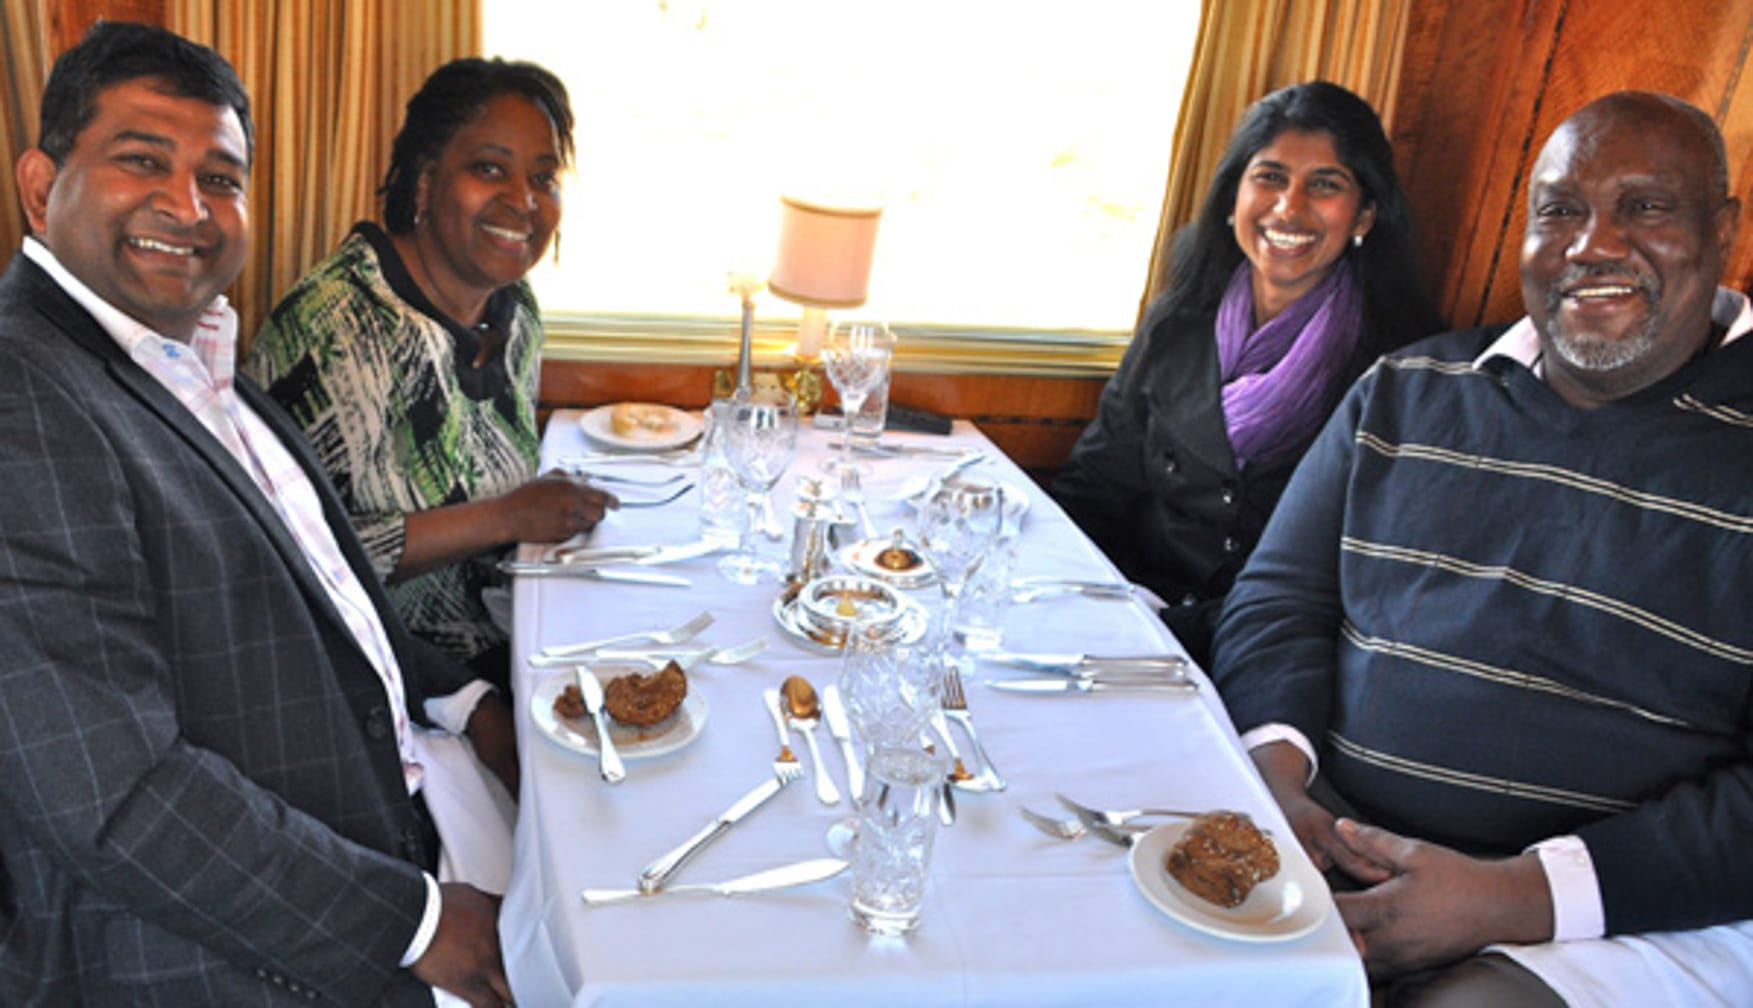 Friends eating on the The Blue Train: South Africa Luxury Train & Safaris journey